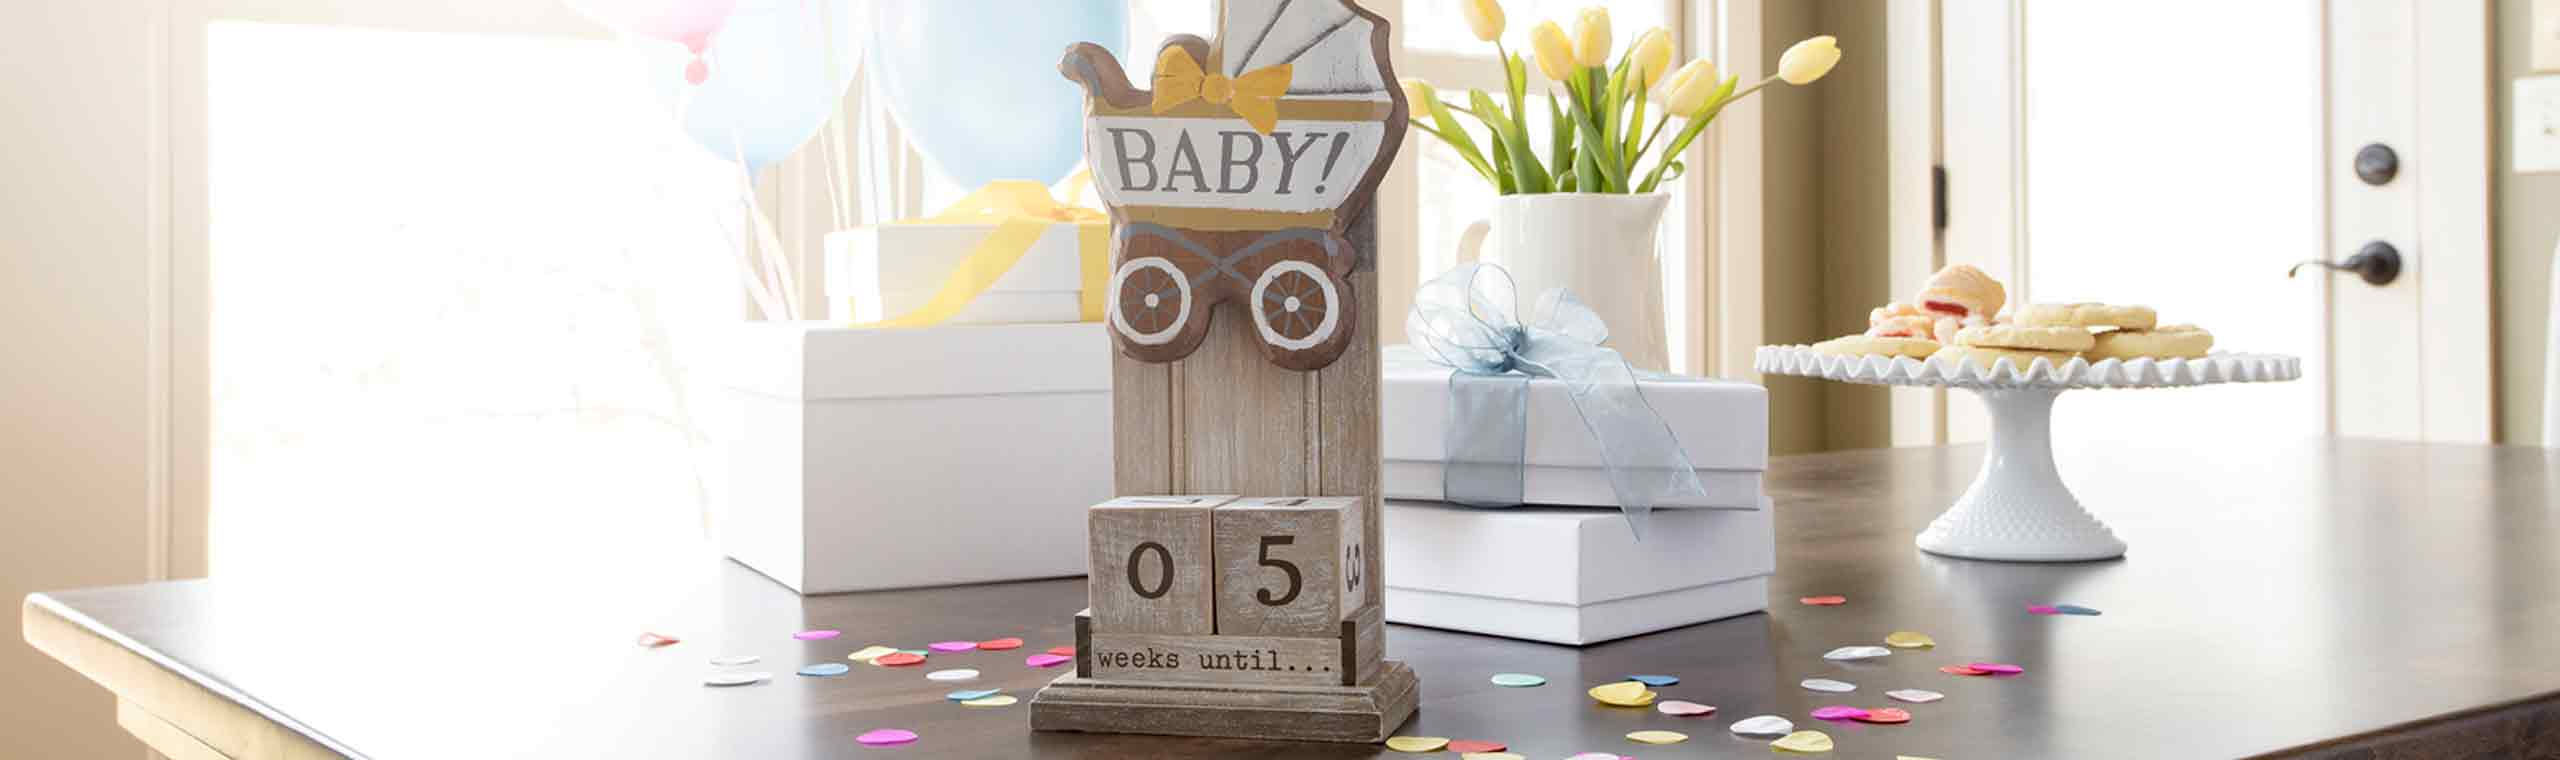 a mark the moment stand with a stroller token and wooden blocks marking the date for the new baby.